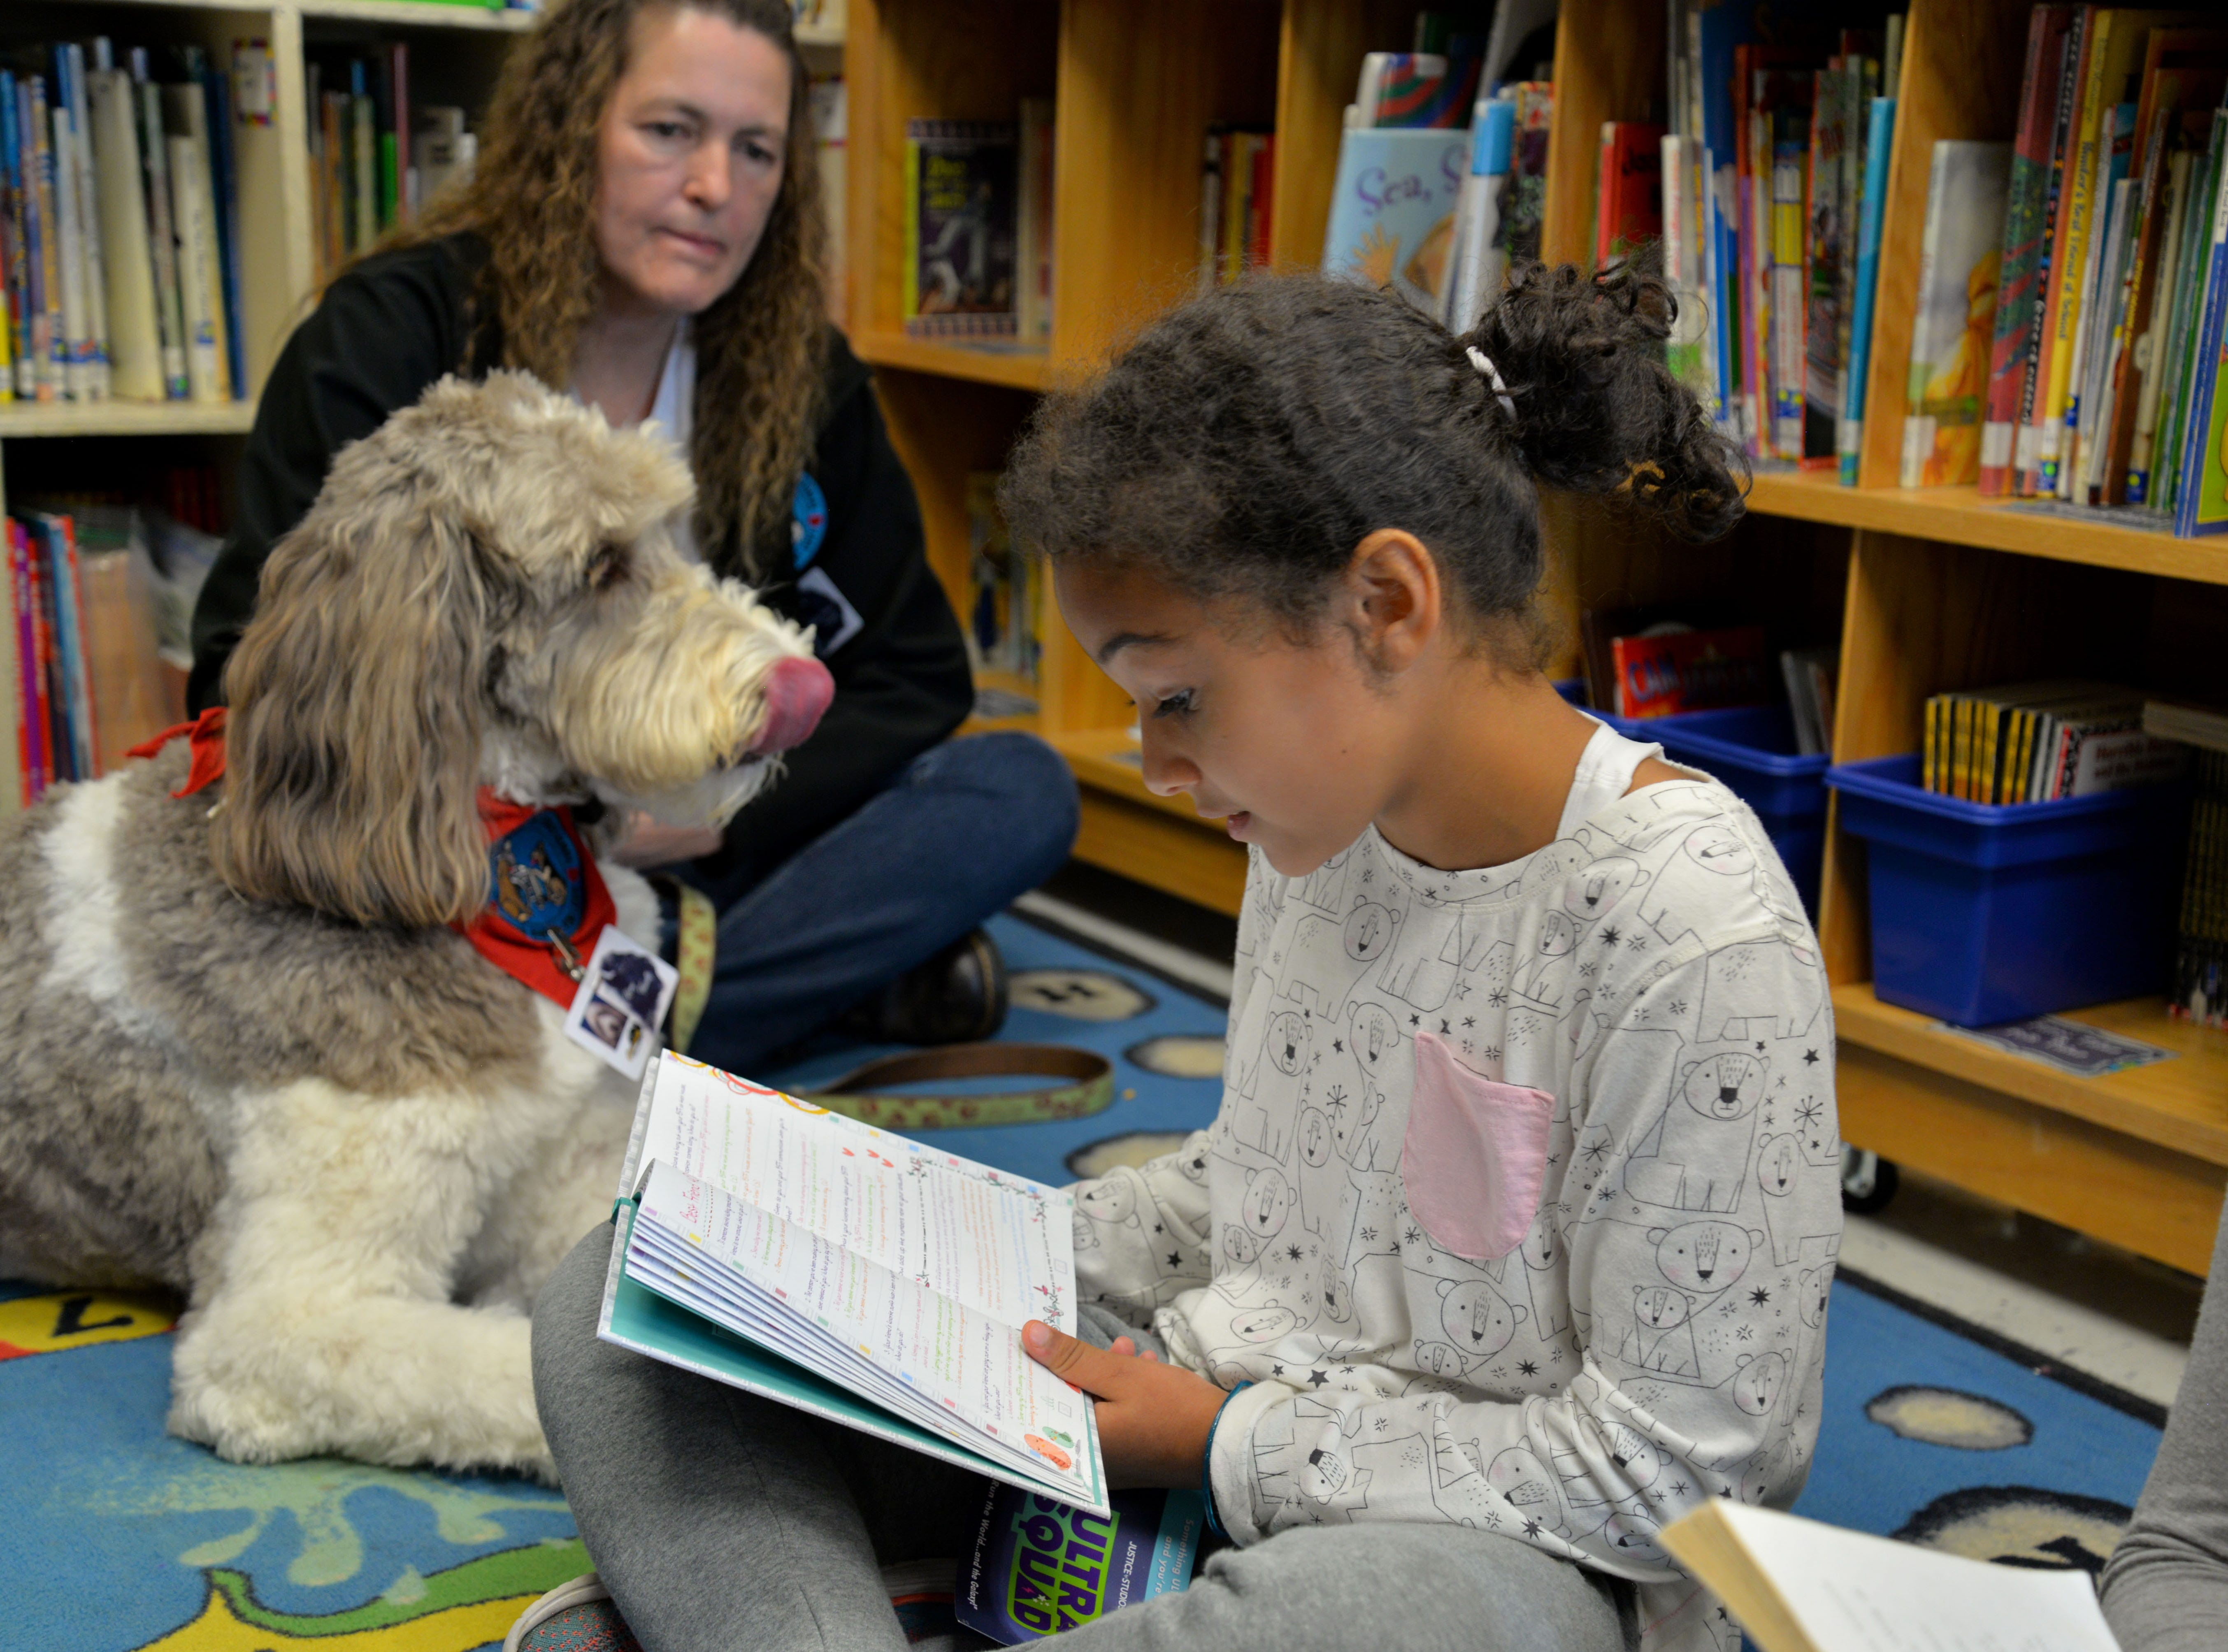 Kathleen Wilson and her labradoodle, Rory, visit Churchville Elementary once a week so students can read to the dog. Rory is a certified therapy dog and is allowed in any Augusta County School or school function. Here Rory is pictured with Charli Cairns, 8 years old.